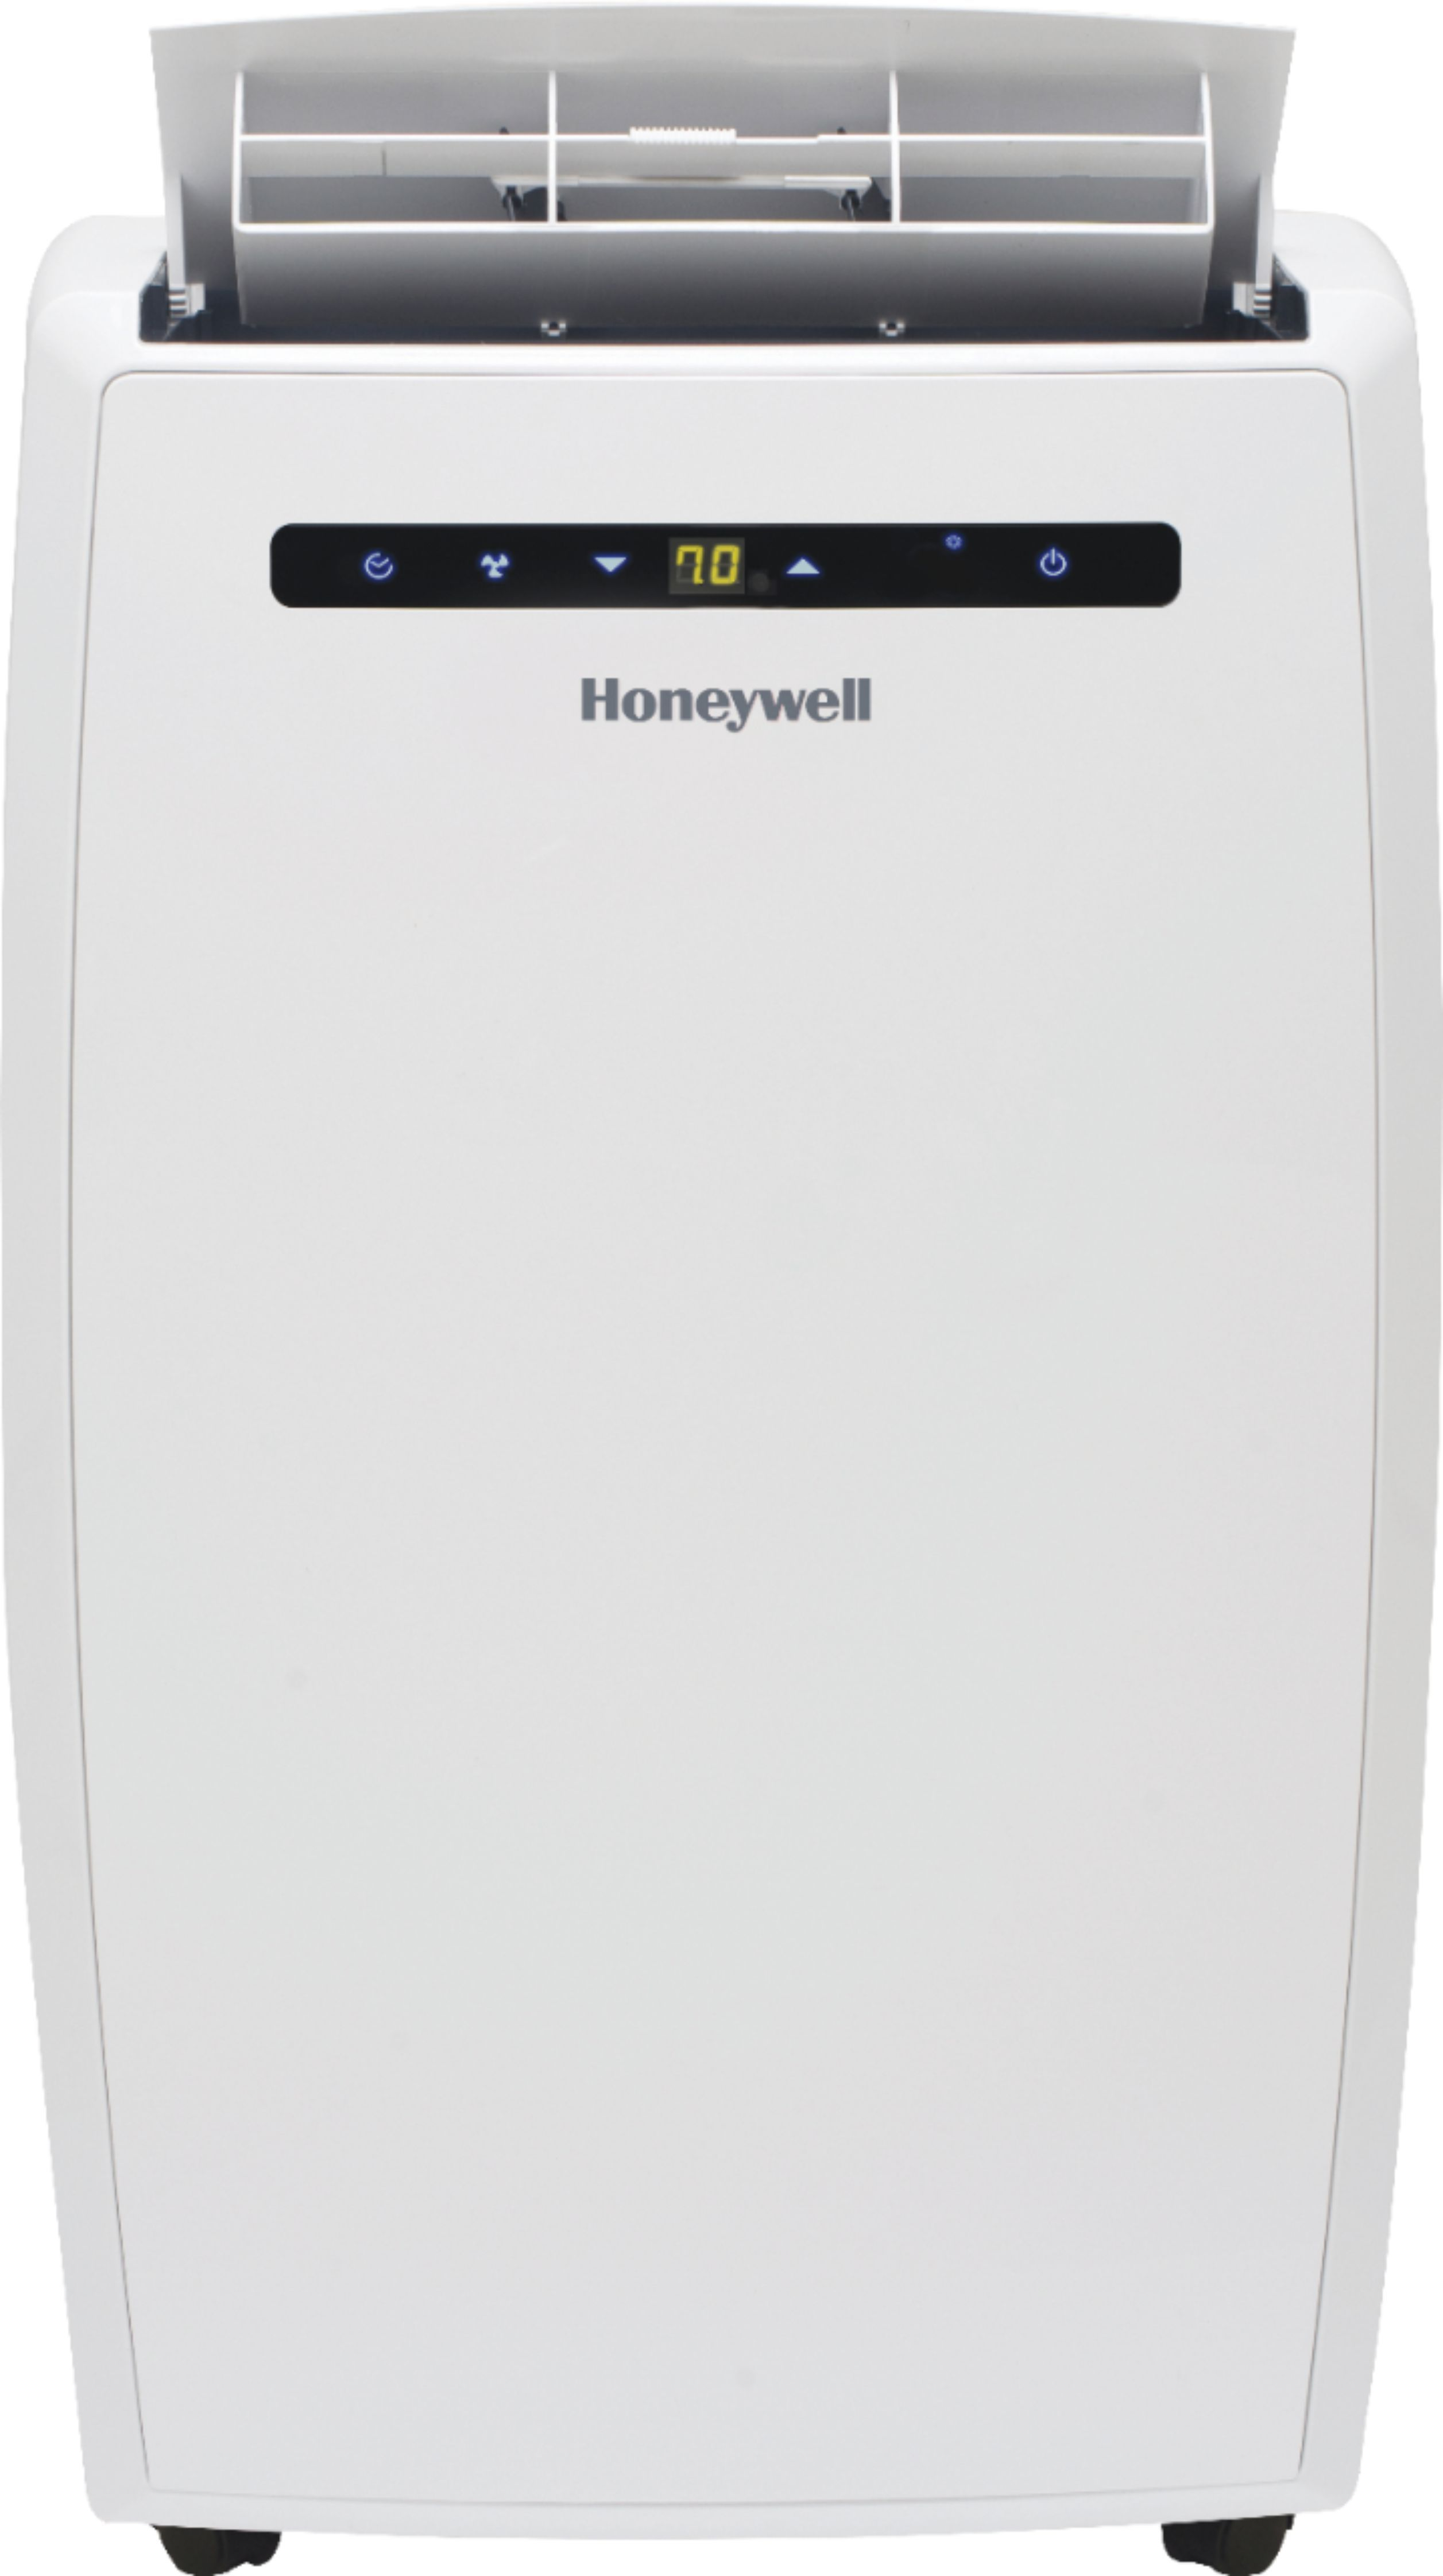 Honeywell 450 Sq. Ft. Portable Air Conditioner White